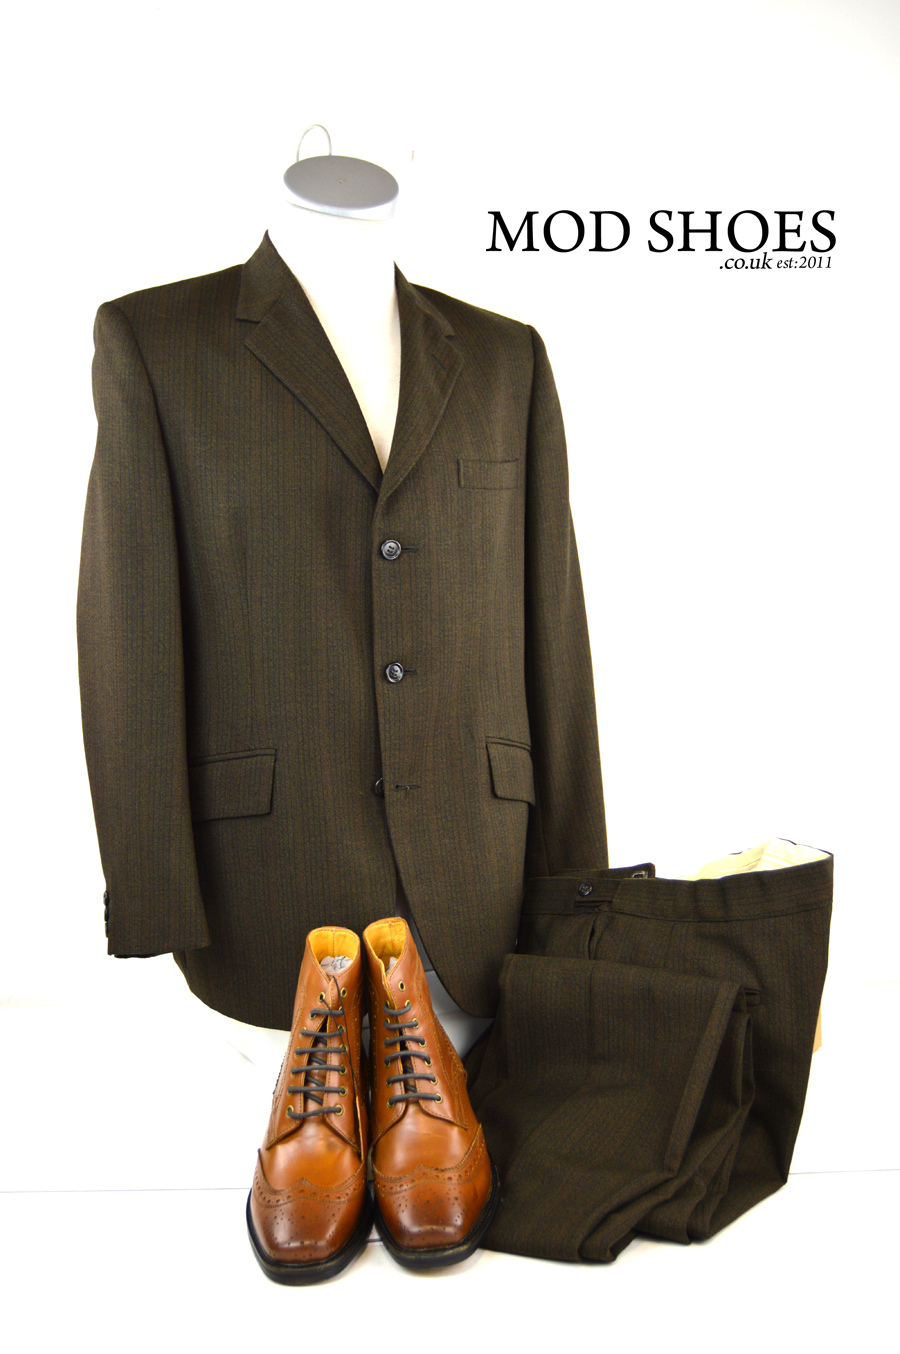 mod-shoes-landslides-tan-boot-peaky-blinders-12